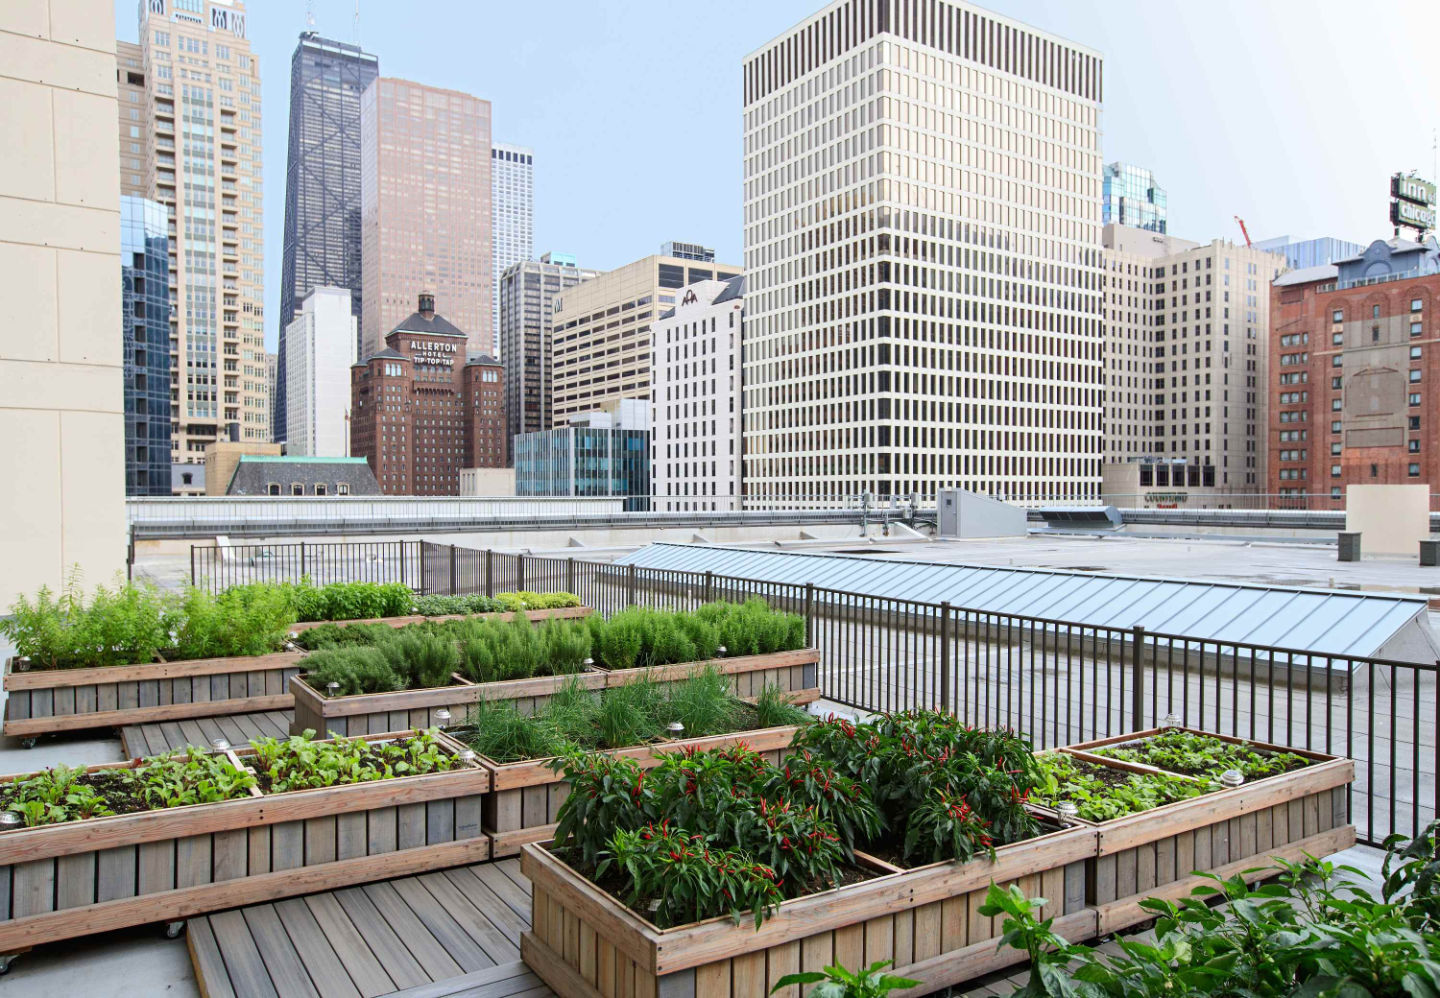 The hotel's rooftop garden includes beehives